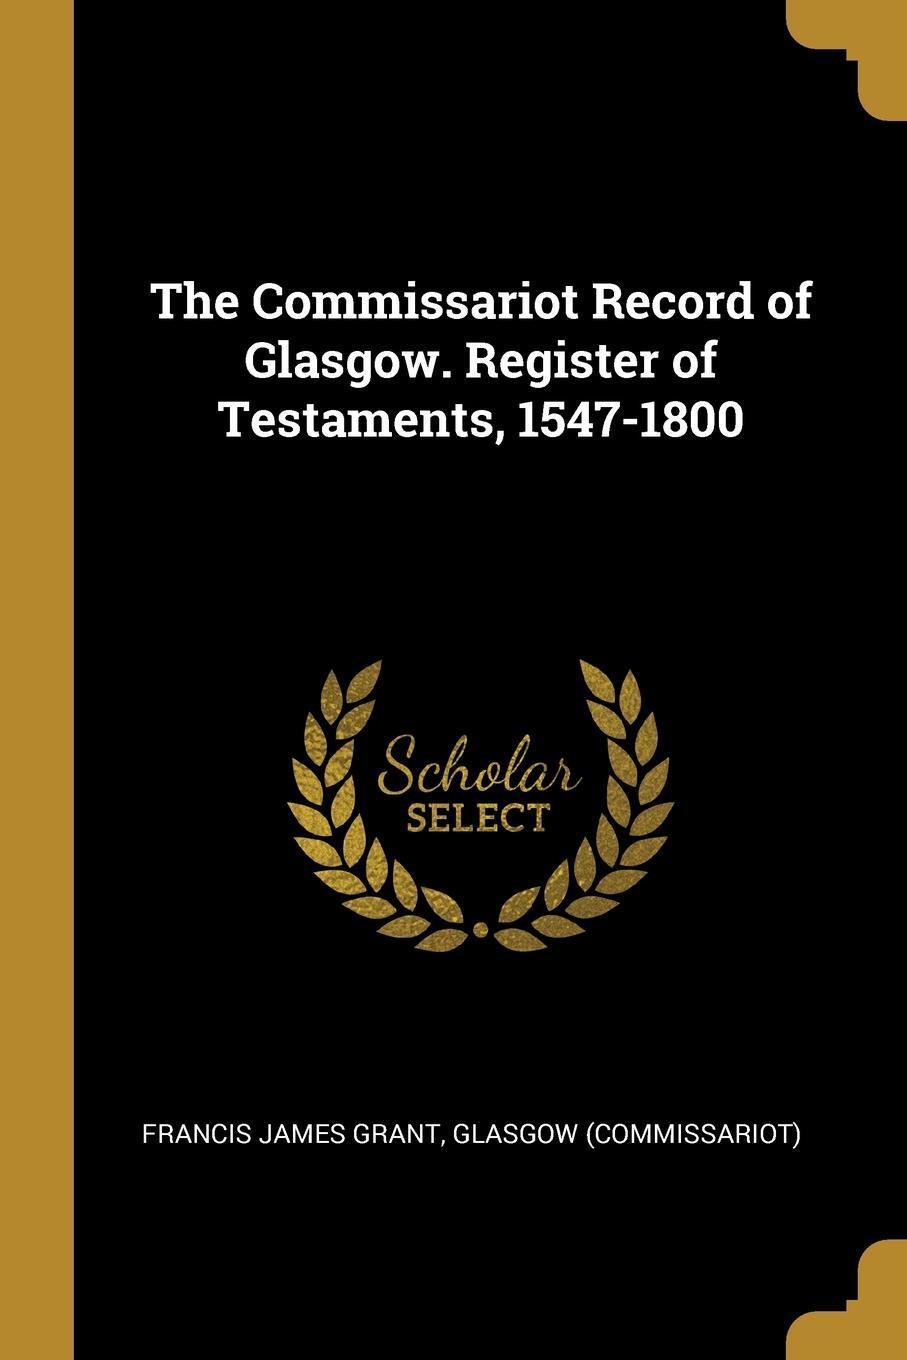 The Commissariot Record of Glasgow. Register of Testaments, 1547-1800. Francis James Grant